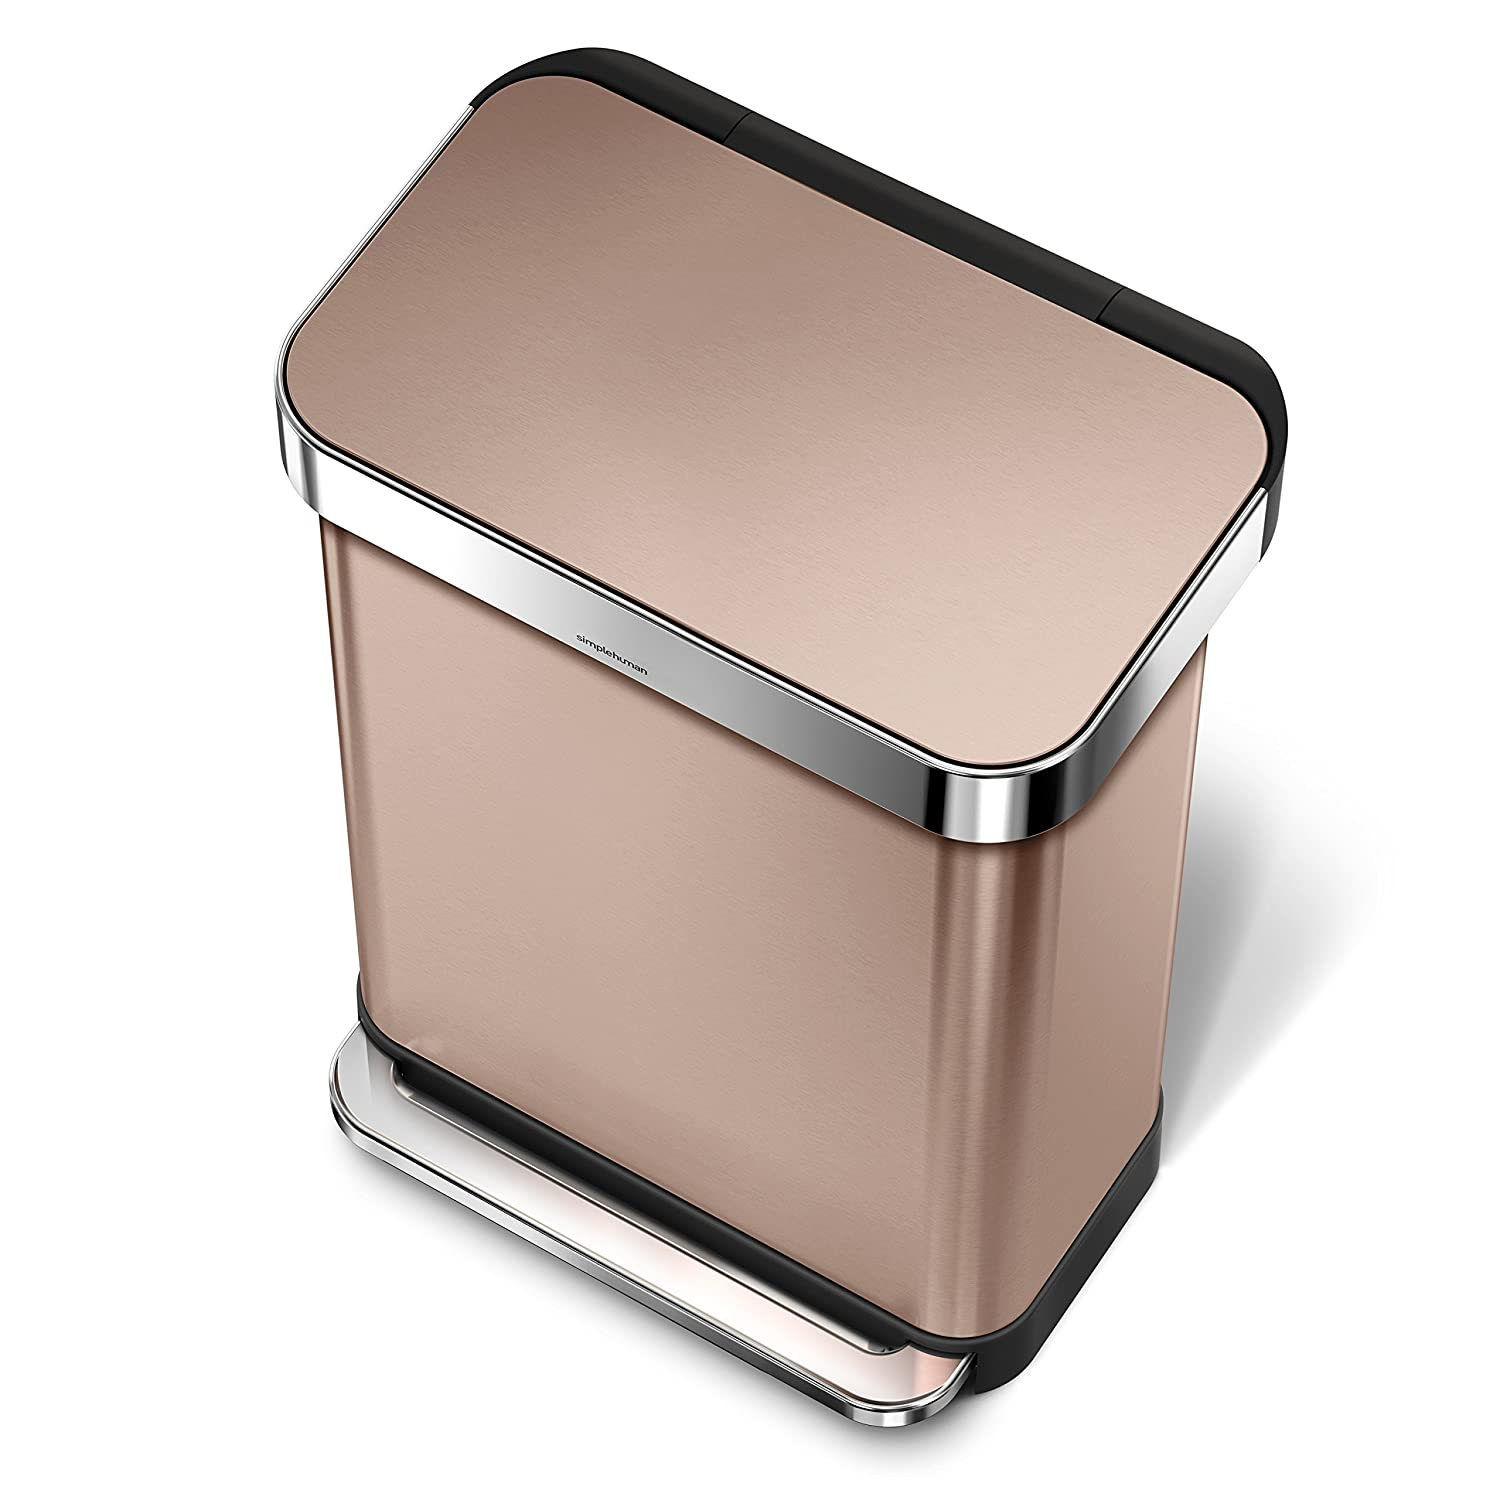 simplehuman Rectangular Step Trash Can with Liner Pocket, Rose Gold Stainless Steel, 30 Litre / 7.9 Gal Simplehuman CAD CW2032